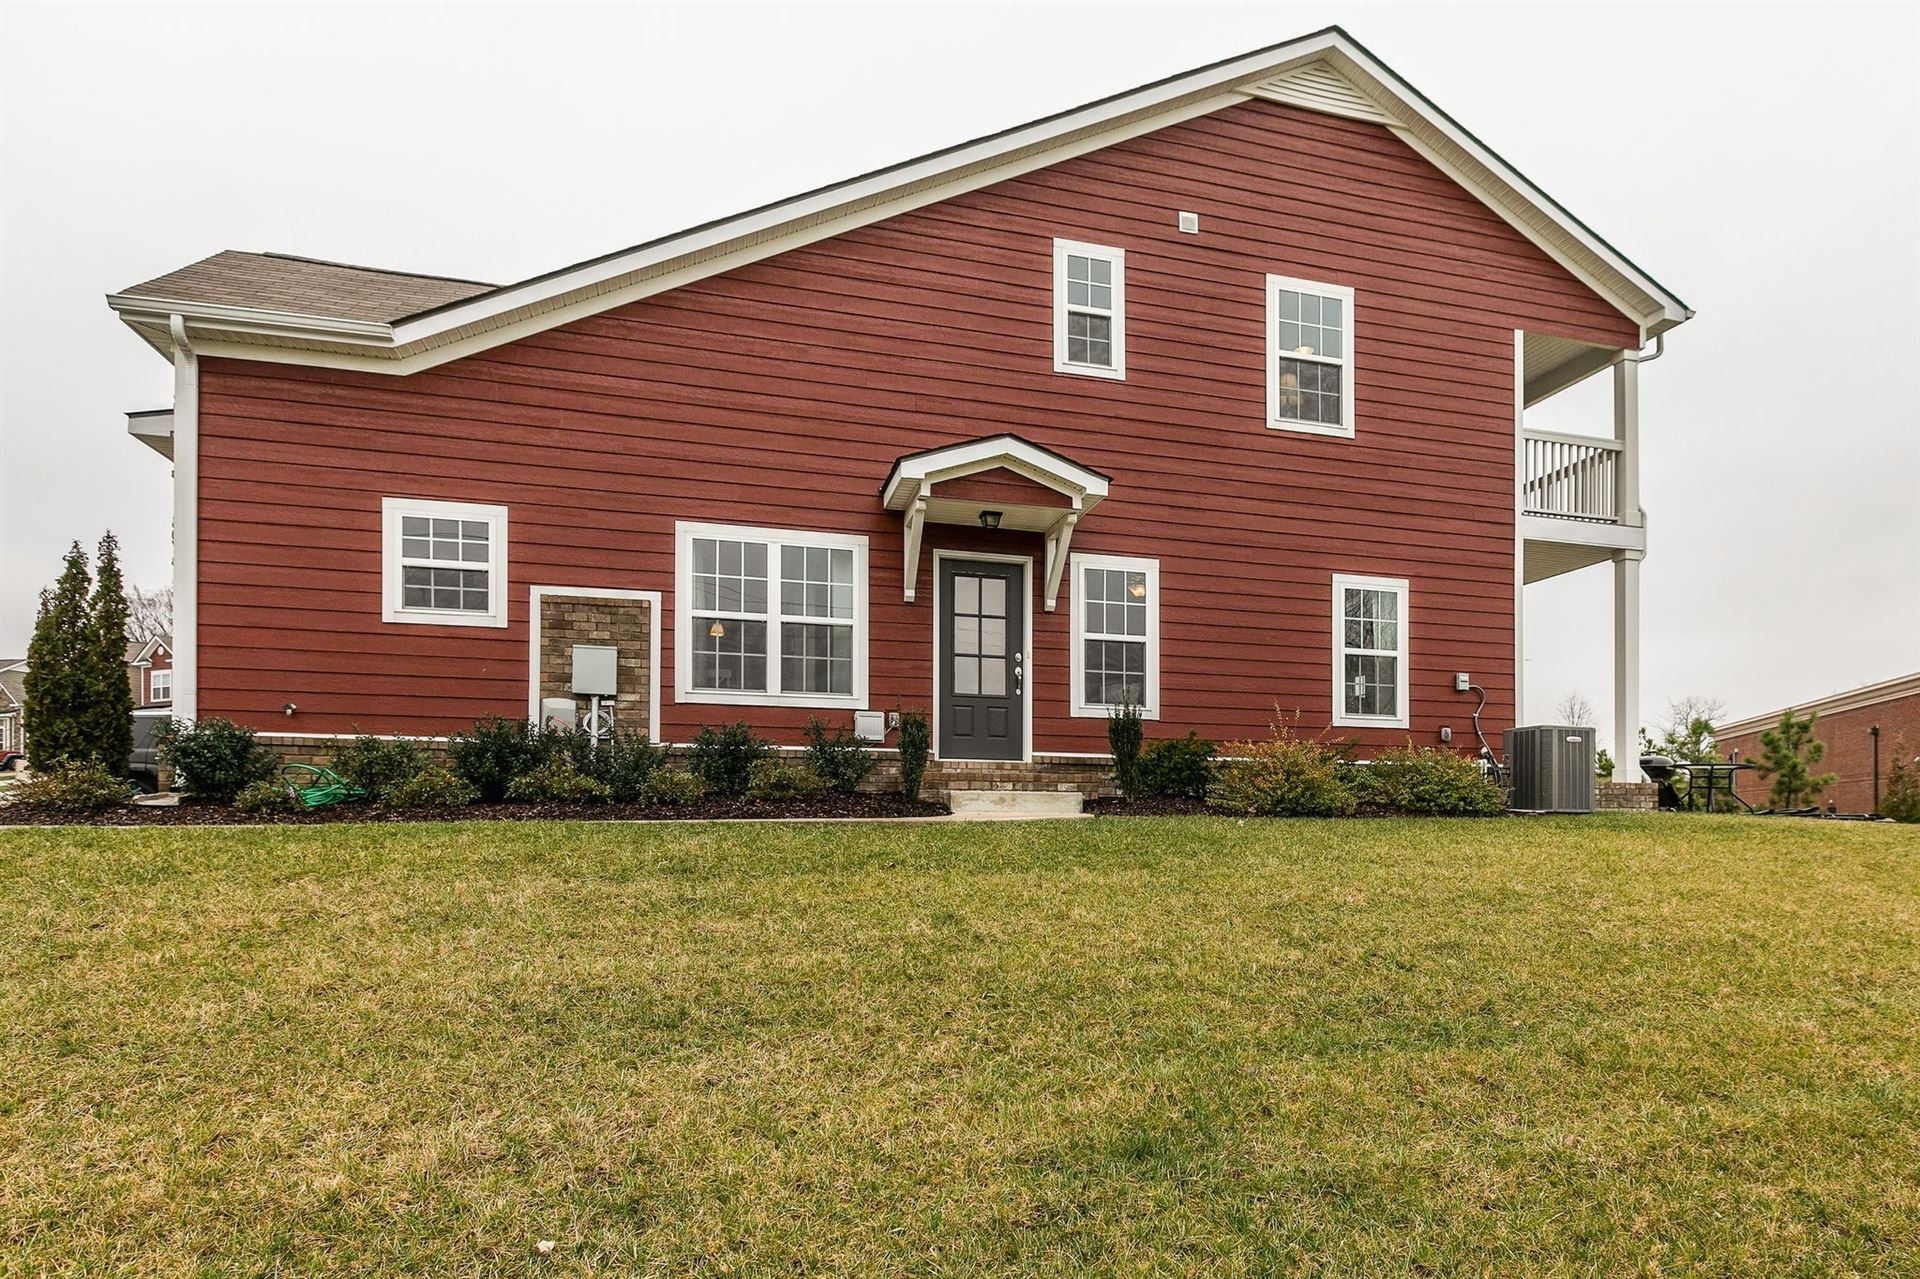 Photo of 725 Finse Dr, Spring Hill, TN 37174 (MLS # 2134305)